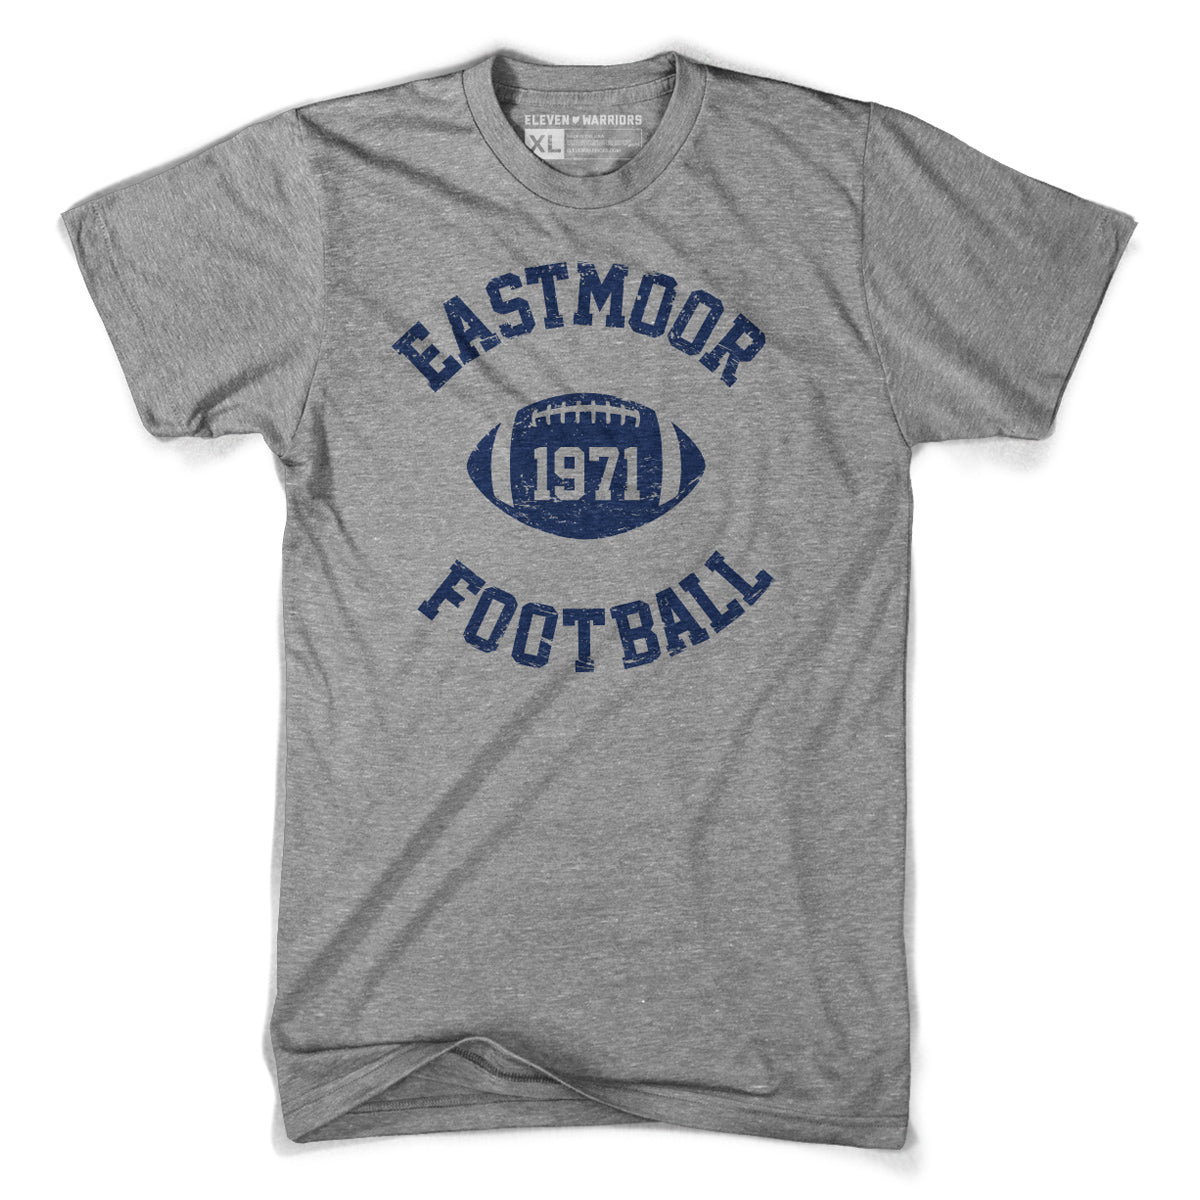 Eastmoor Football '71 Tee